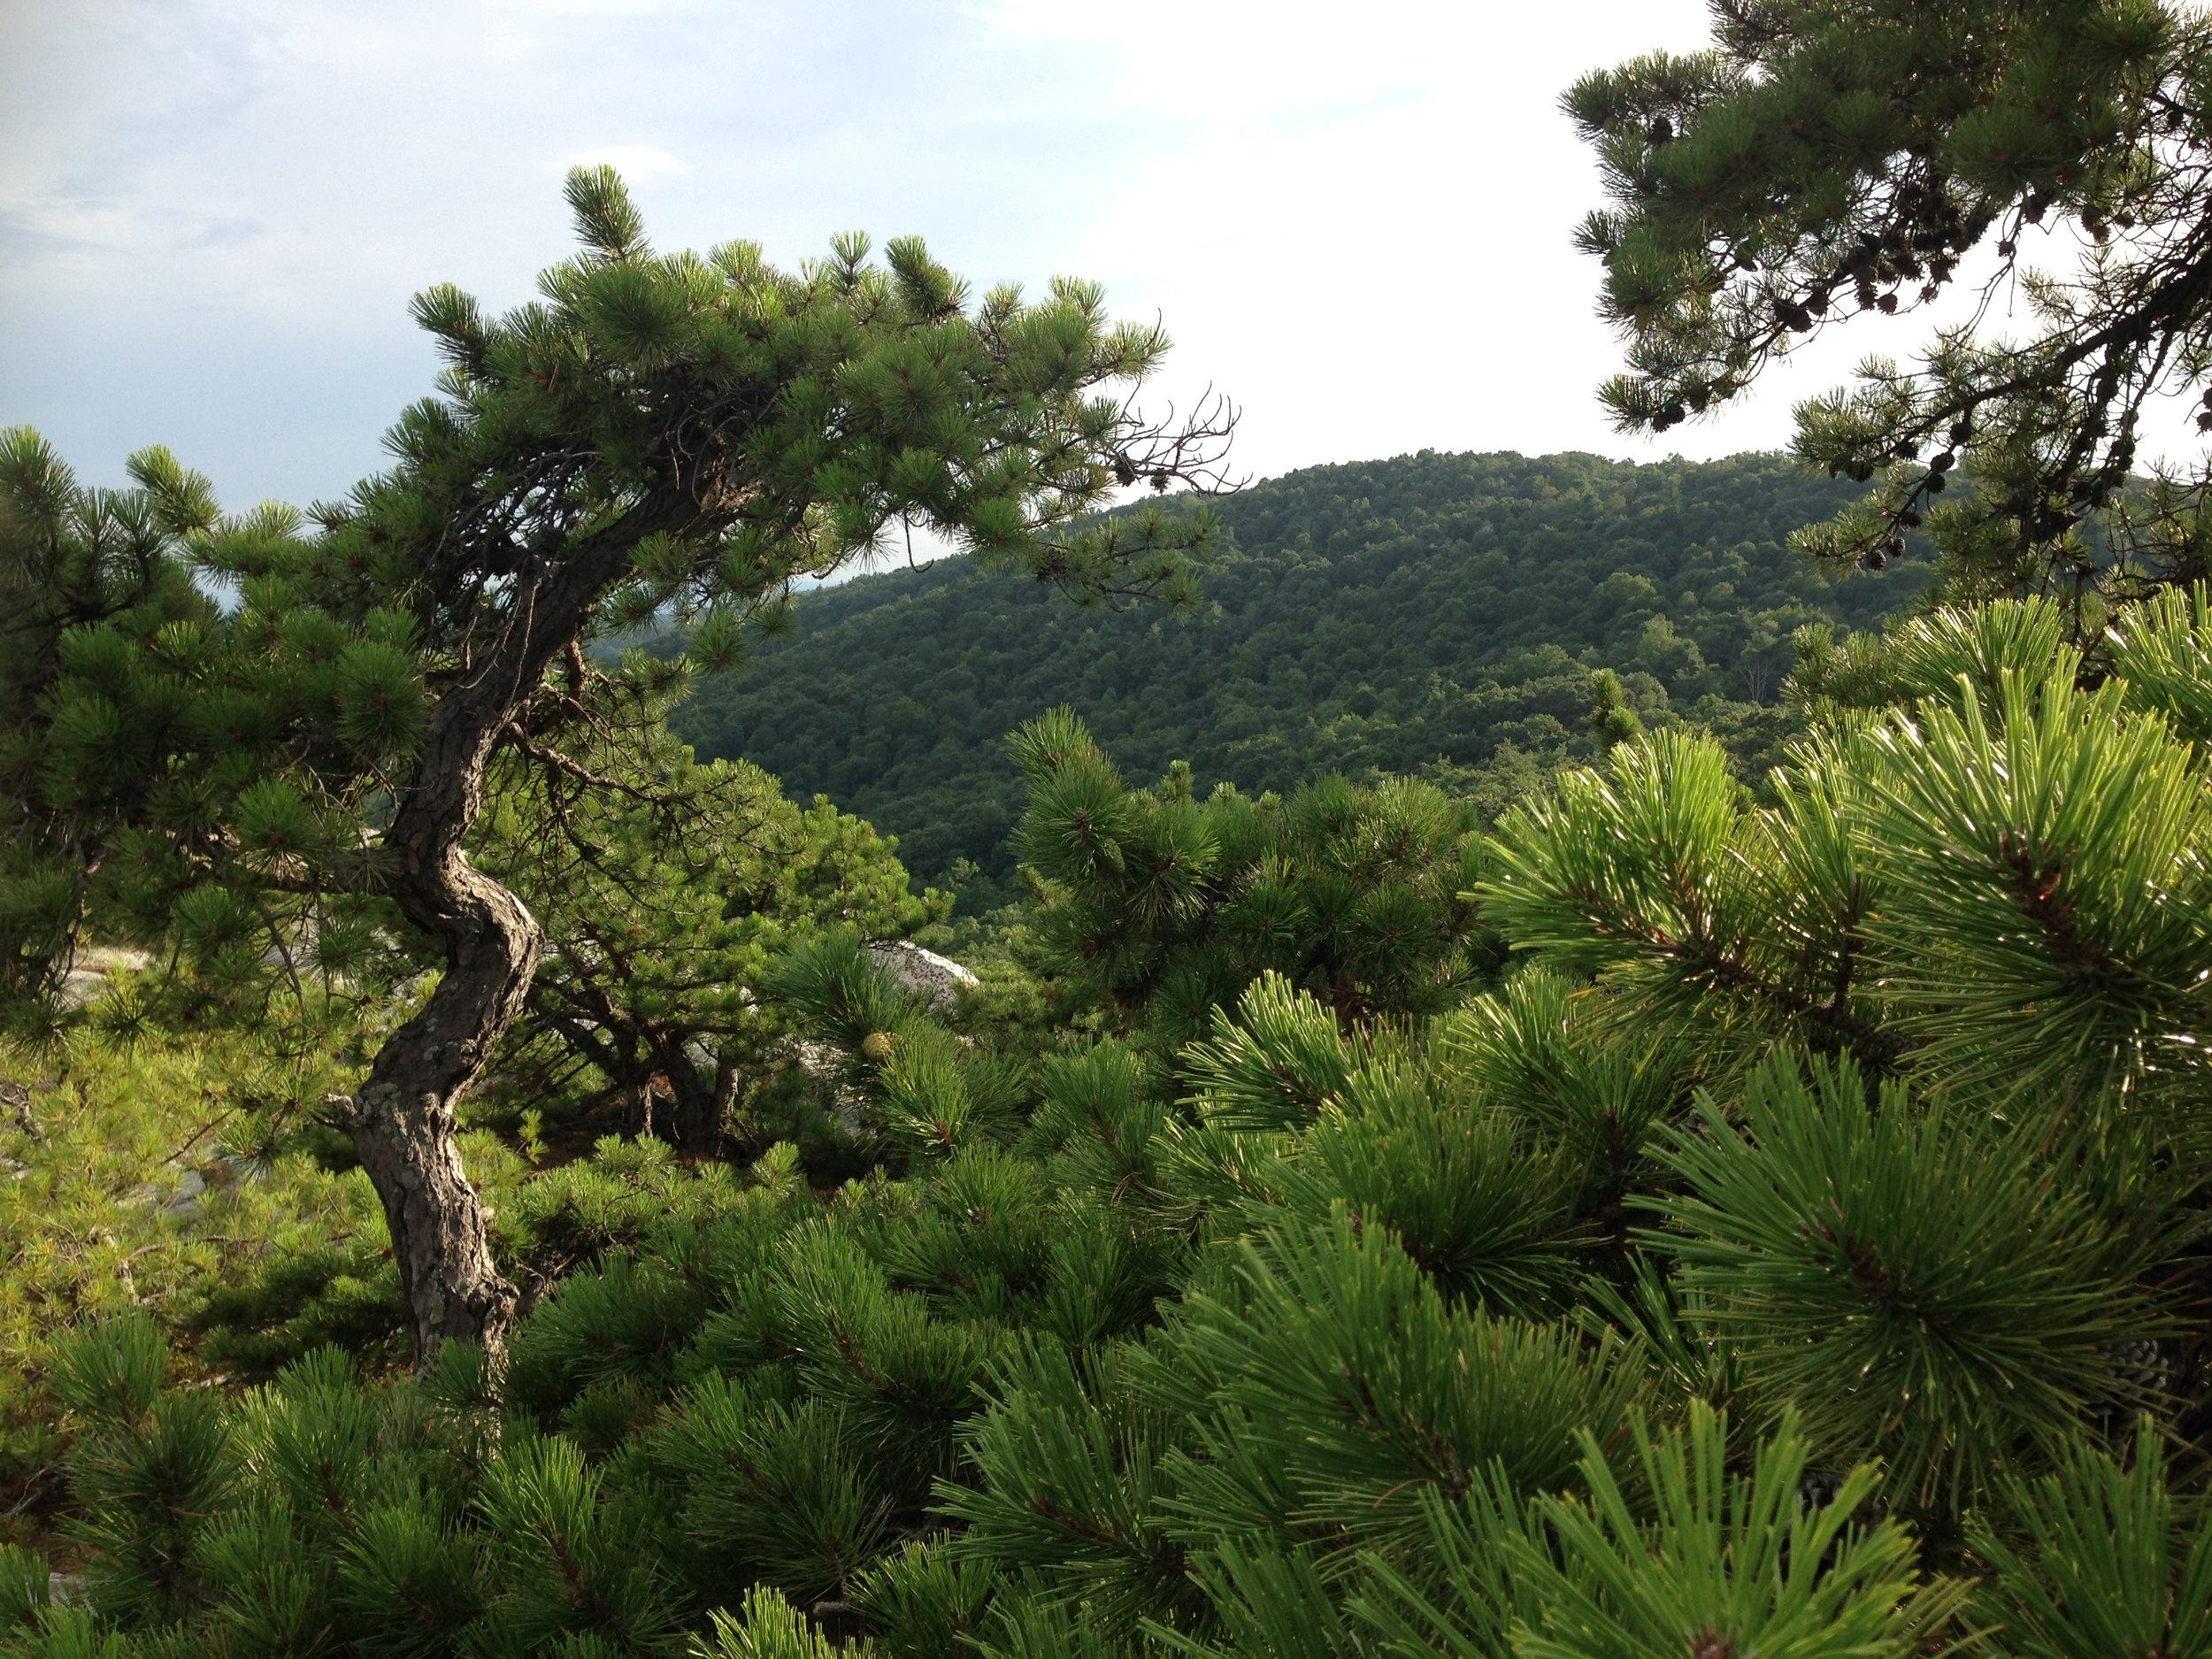 PERSPECTIVES:  the slightest shift in my position on the rock beneath me as I view the landscape through the lens of my camera changes whether I notice the textures of the pine needles in the foreground, the wave of the tree trunk on one side, or the mountain peering back at me in the distance.  I am reminded of my reflections this past week on how I can never really know what someone else's motivation, understanding or experience of a situation may be, that whatever my position is, I can shift ever so slightly and have the opportunity to perceive differently and perhaps connect more clearly to the other person. What questions might I ask to invite relationship?     I also recognize that  a shift in perspective does not change the essence of who I am , merely the possibilities for relationship that emerge when I am curious and engaged with the world around me.